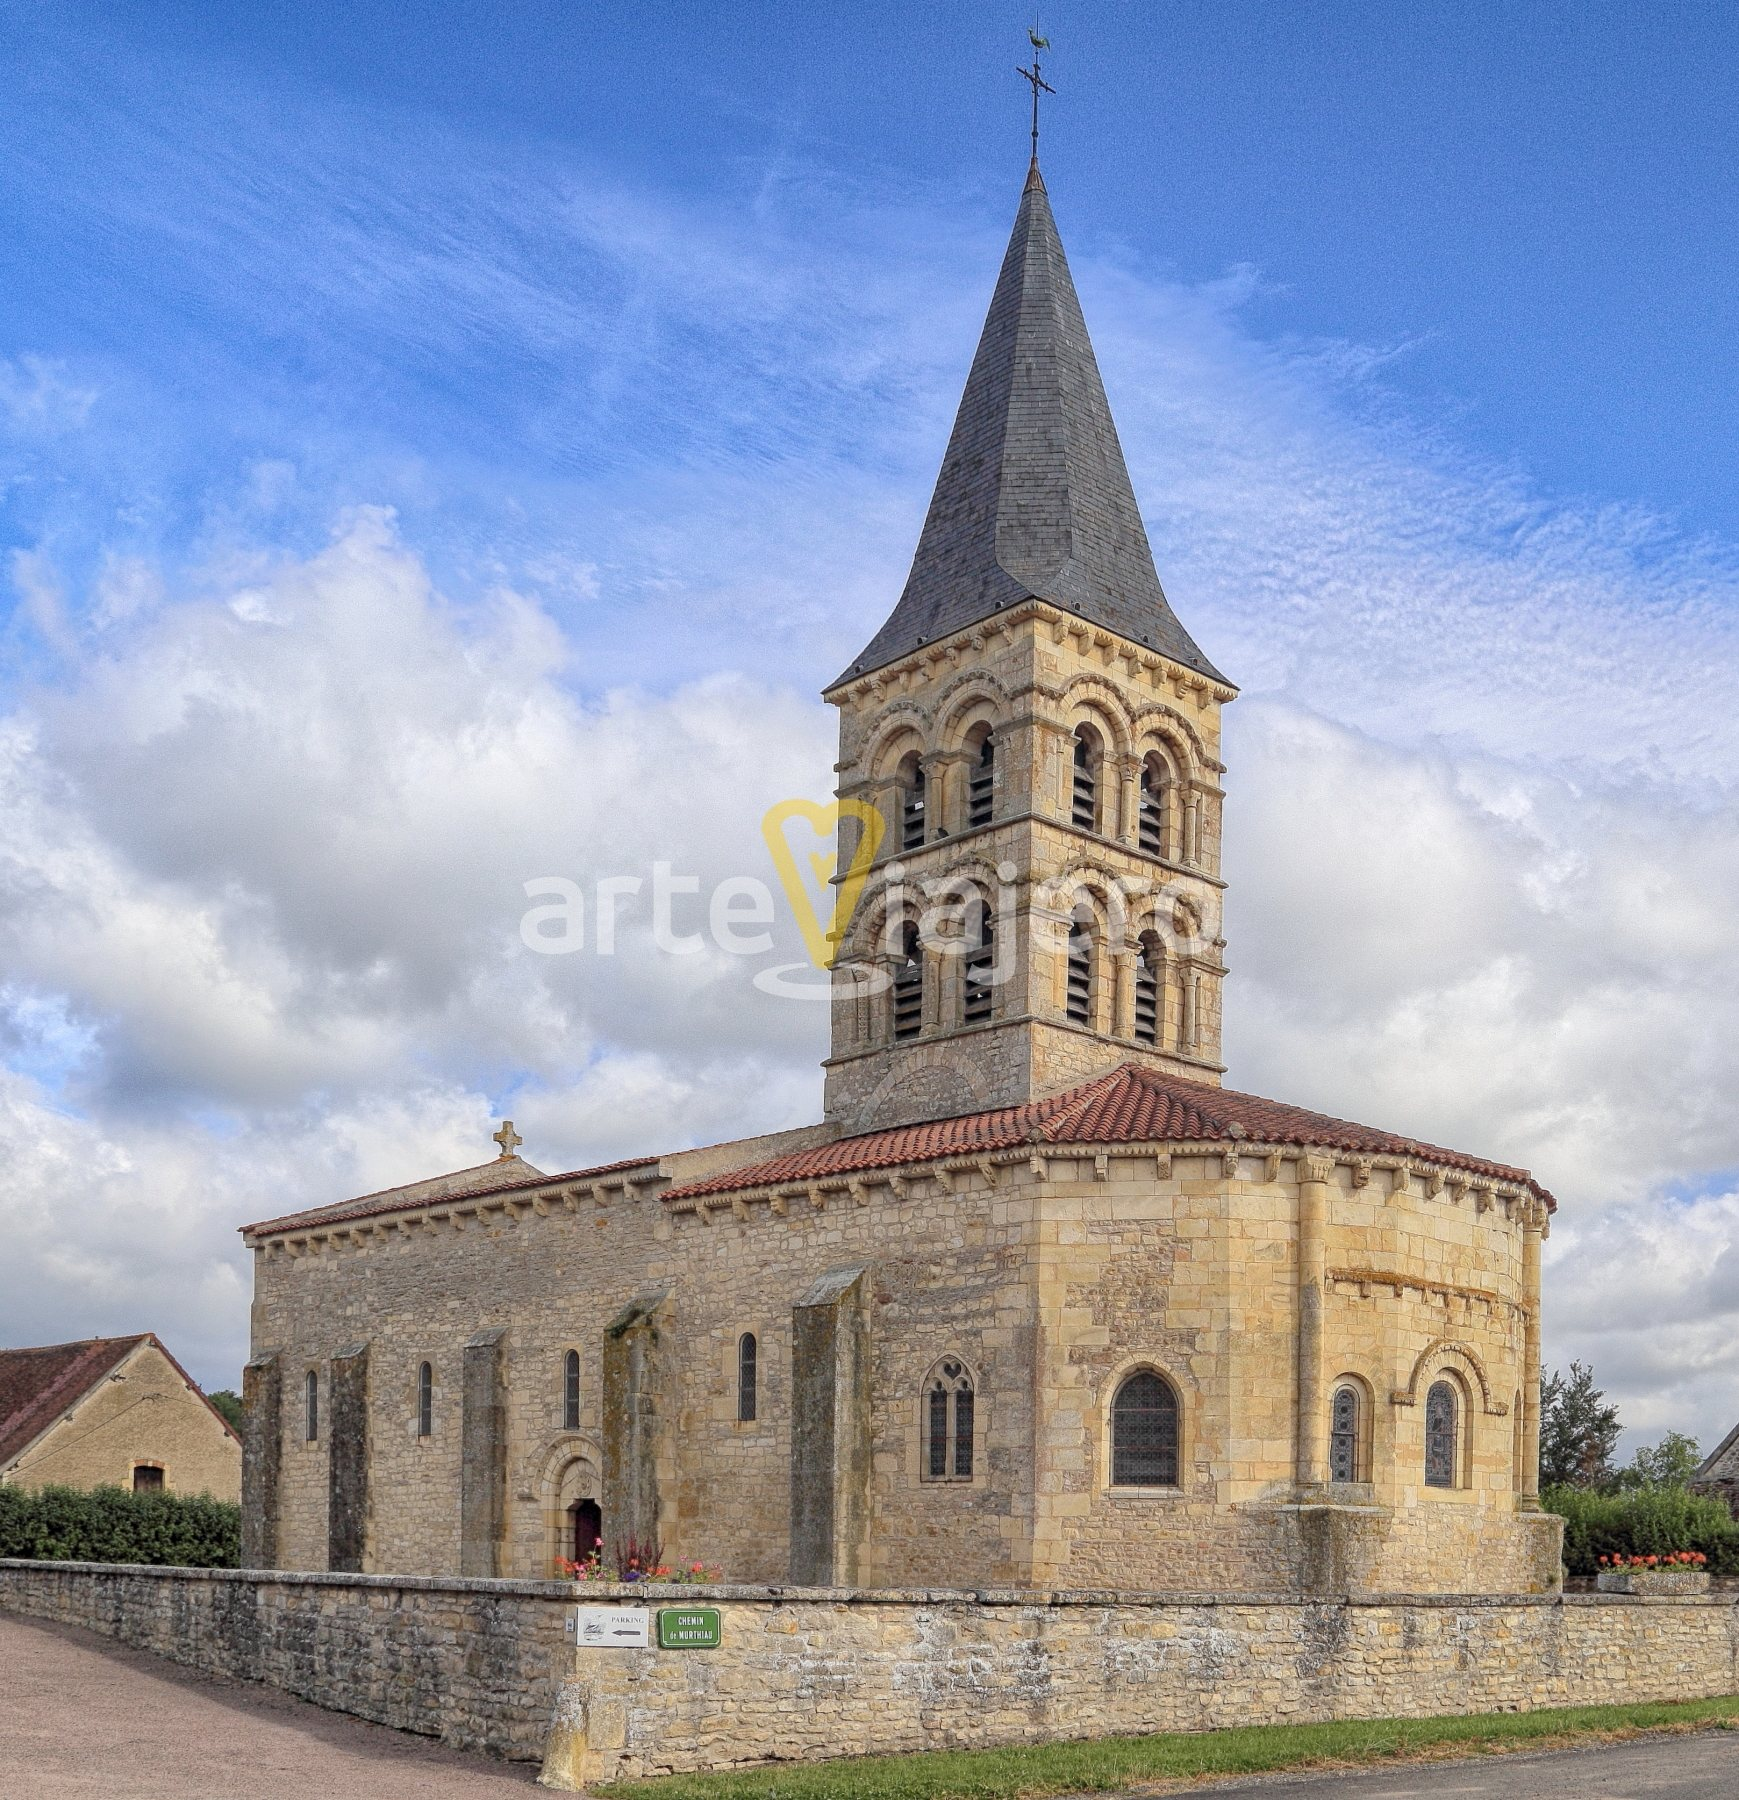 église saint julien de mars-sur-allier